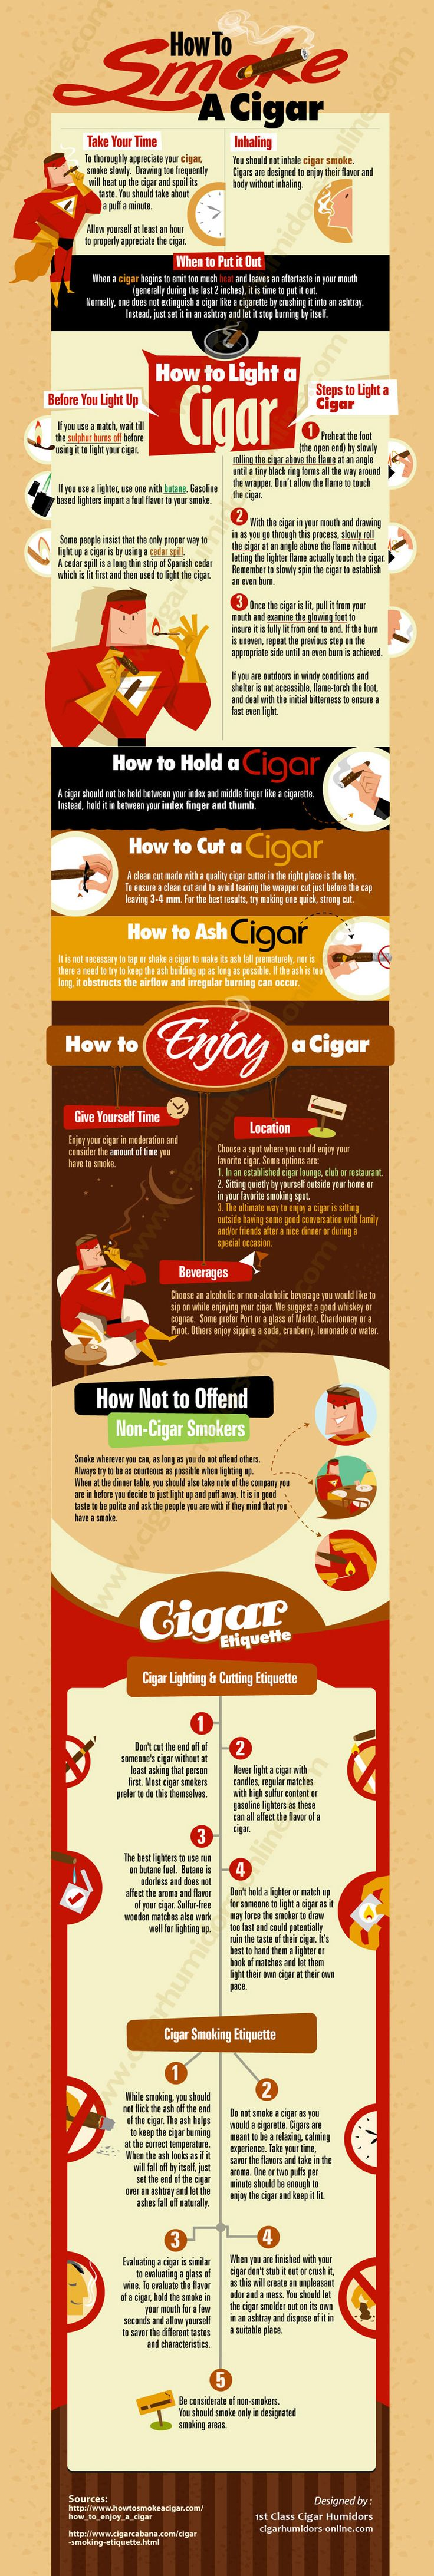 How to Smoke a Cigar Information Infographic